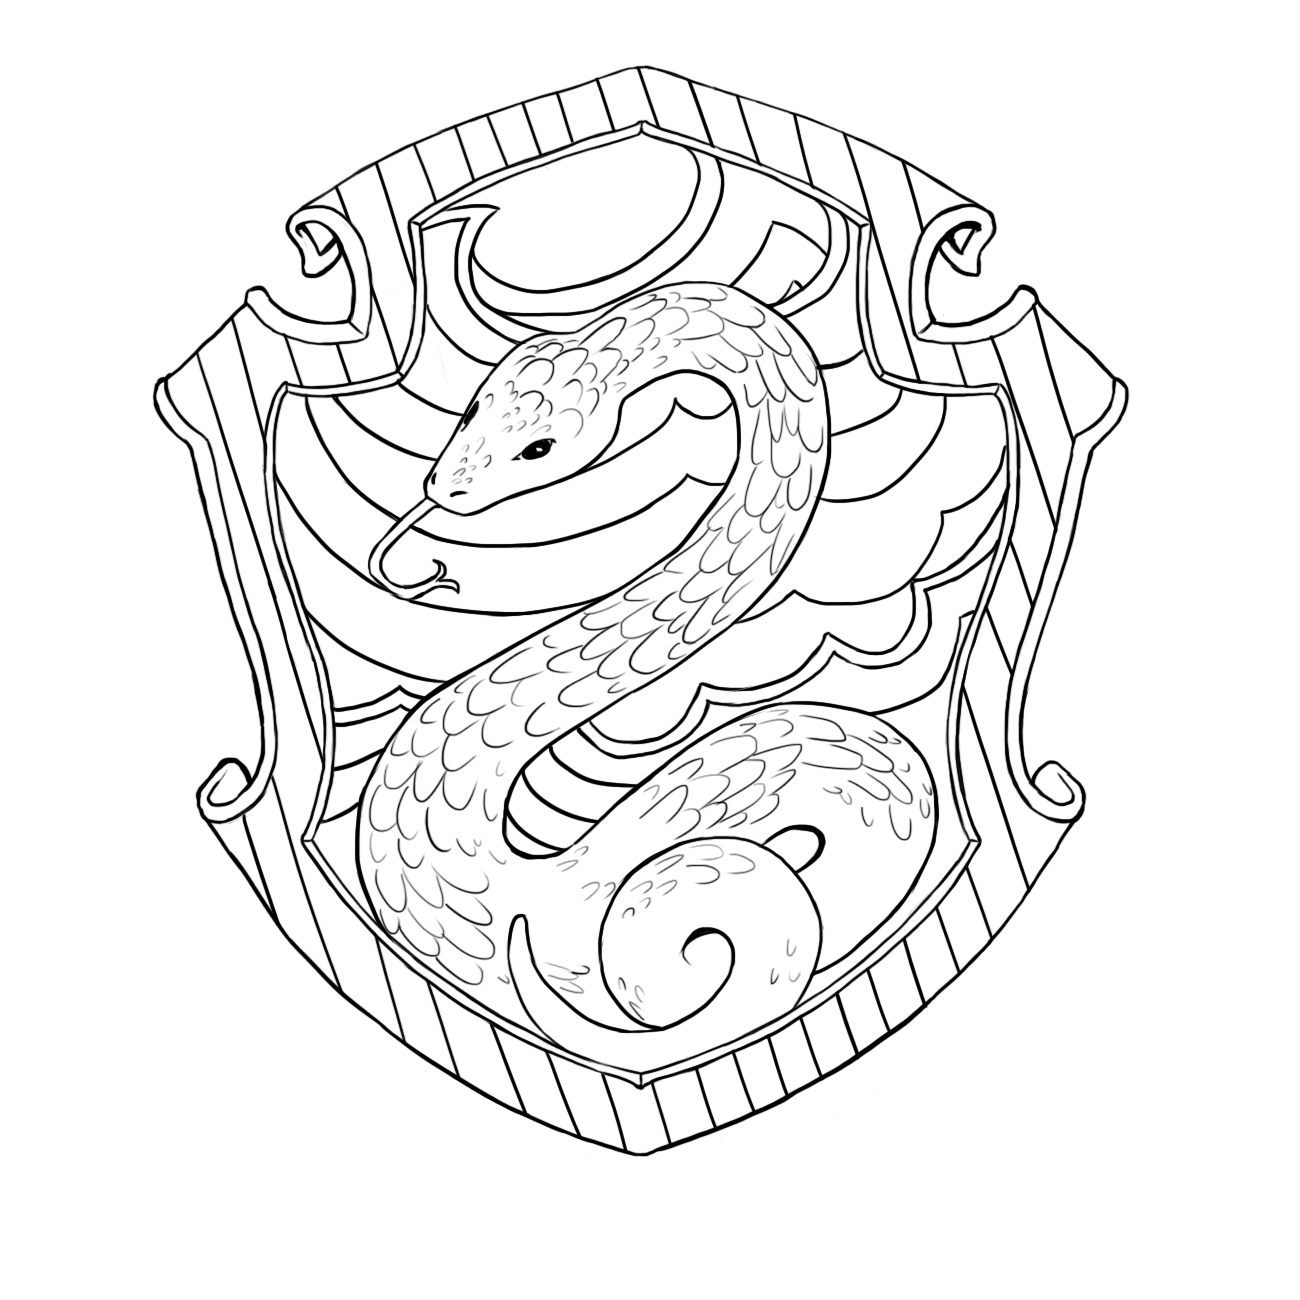 gryffindor crest coloring pages - photo#31